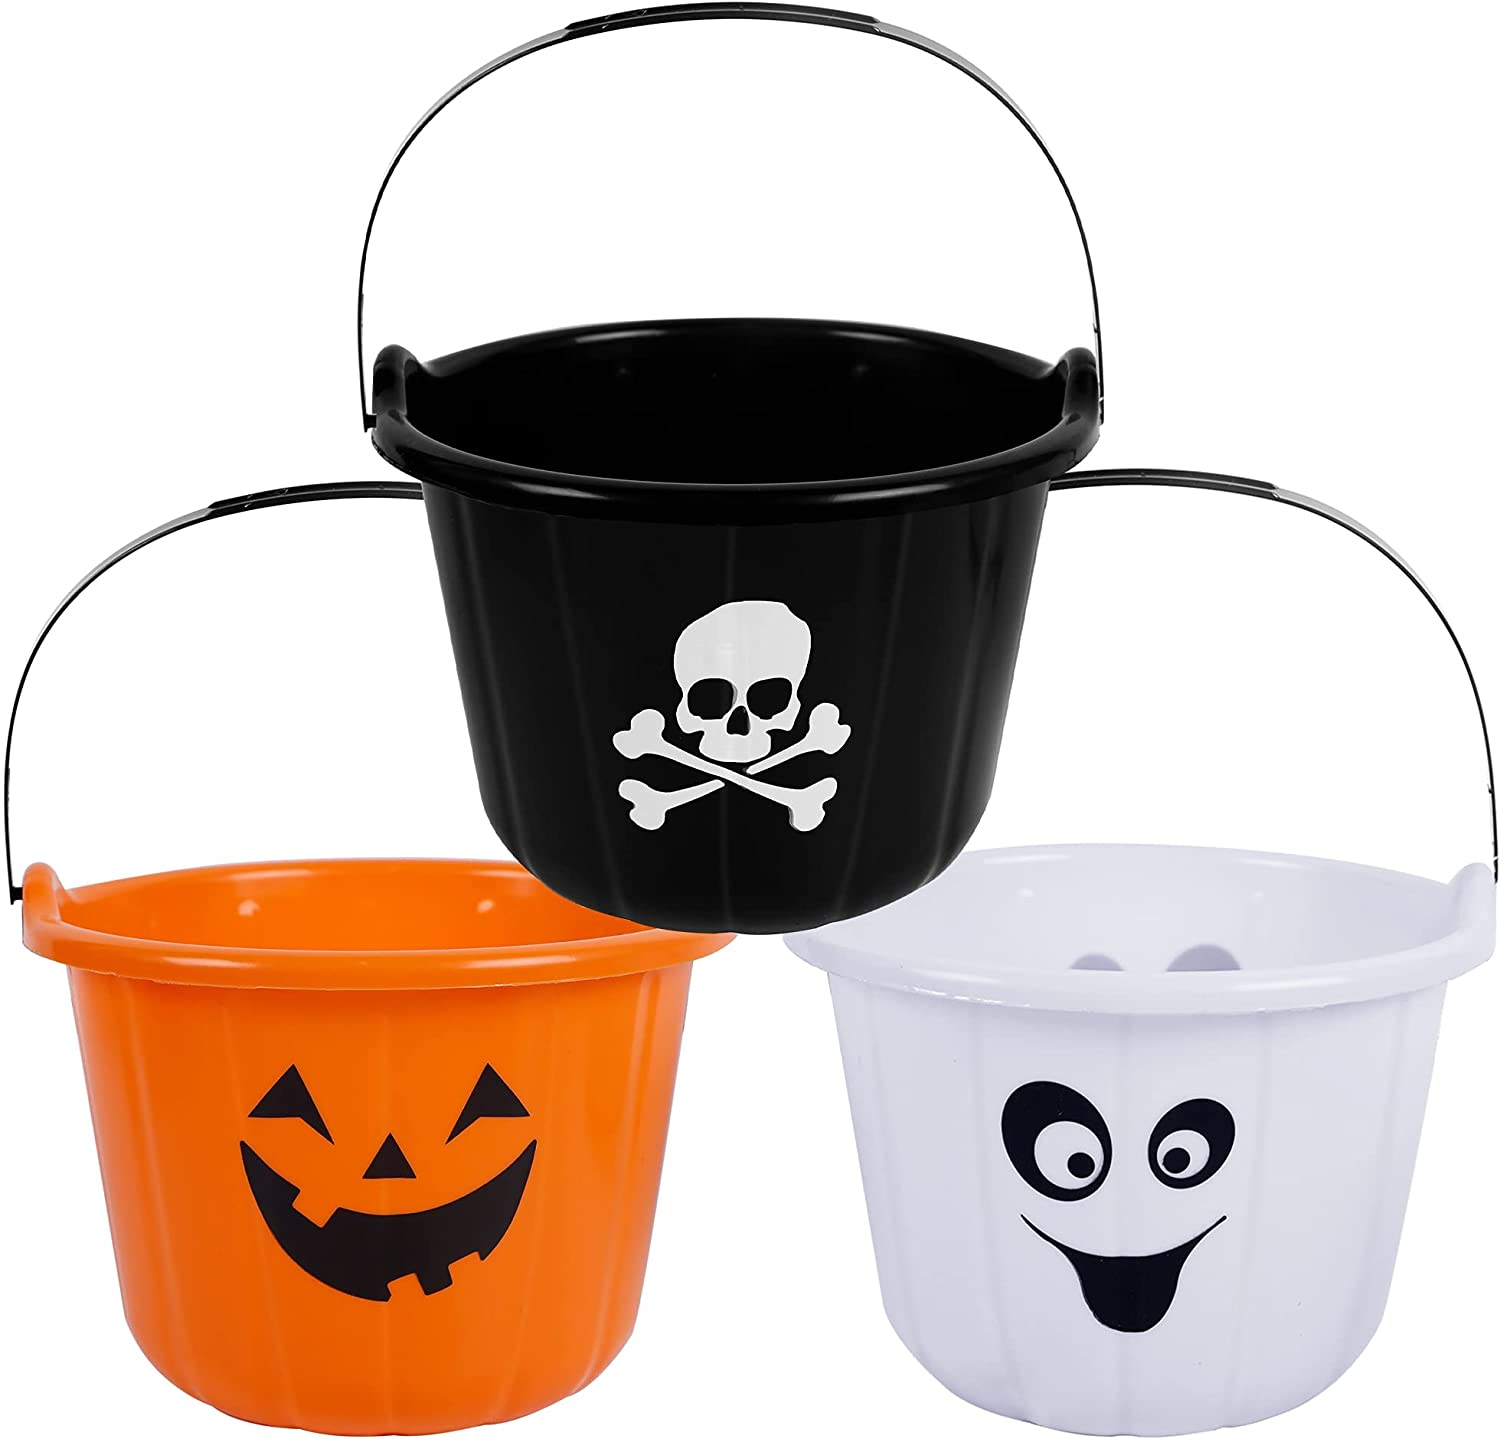 Triumpeek Halloween Candy Baskets, 3 Pack Halloween Trick or Treat Bucket Printed with Jack-O-Lantern, Ghost and Skull, Orang White Black Portable Plastic Candy Pails Set for Halloween Party Supplies, 7.7